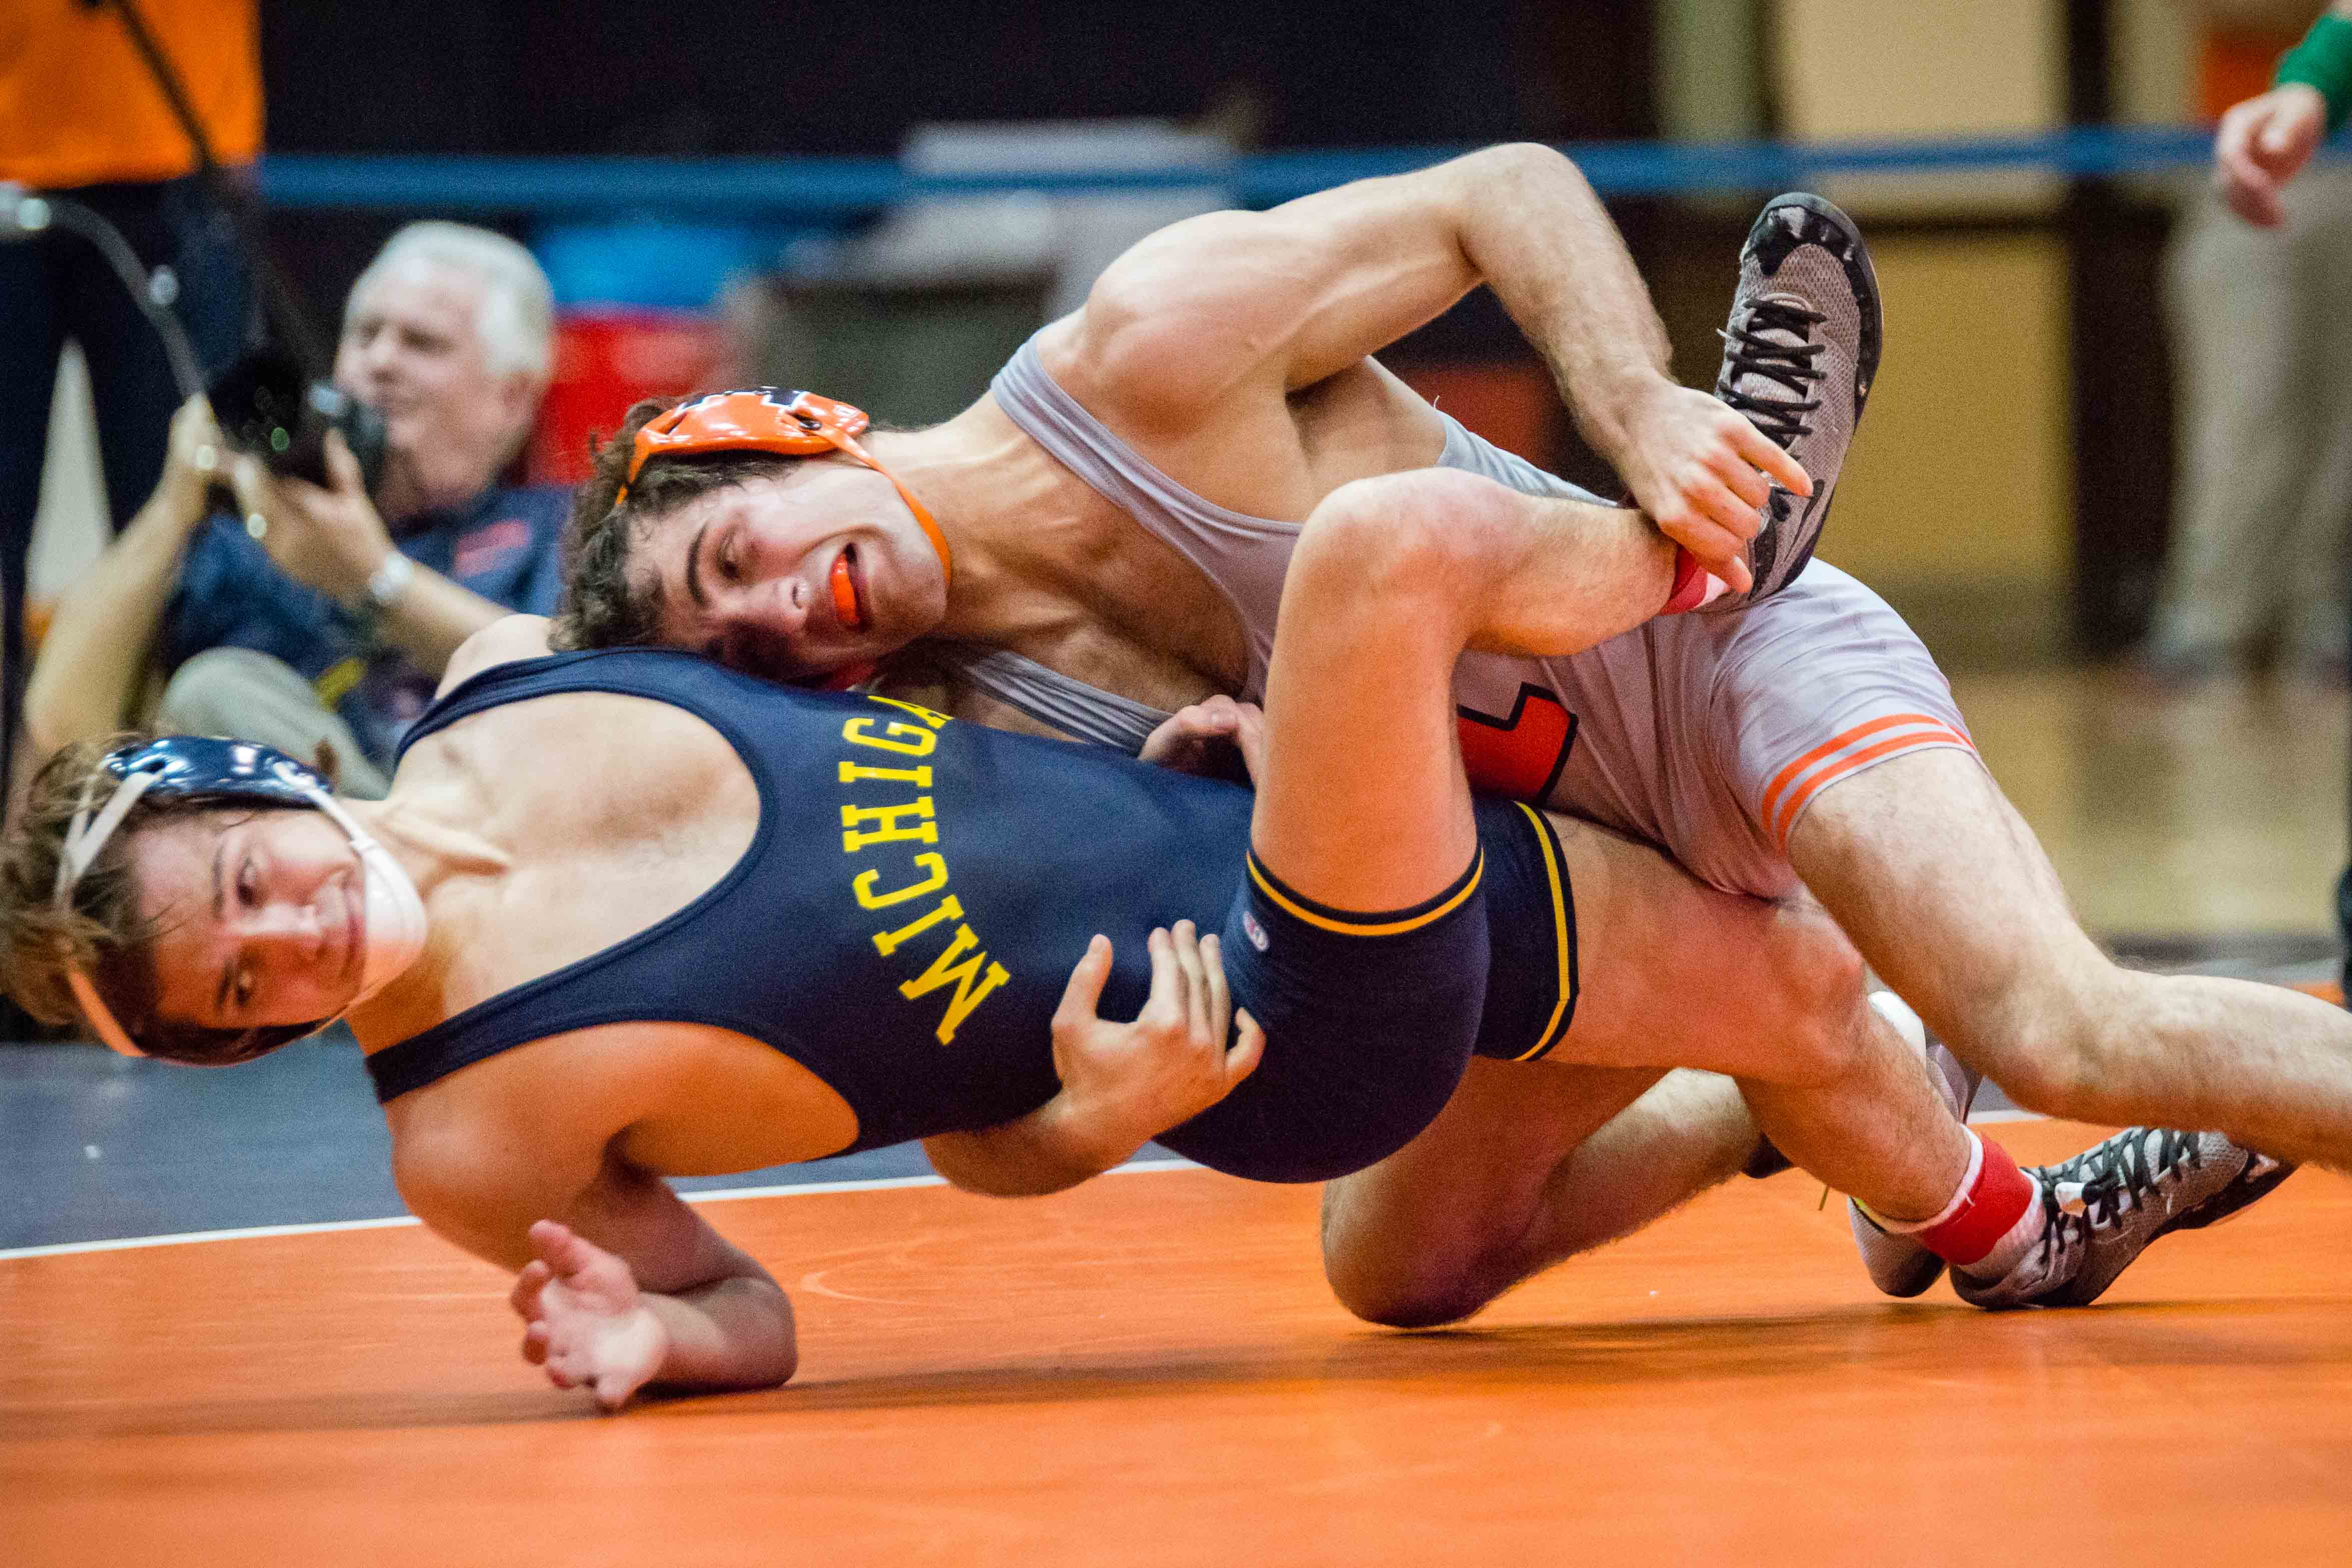 Illinois' Zane Richards wrestles with Michigan's Stevan Micic in the 133 pound weight class during the match at Huff Hall on Jan. 20. Richards won by decision, and the Illini defeated the Wolverines 34-6. The Illini's victory moved their record to 3-2 overall and 2-2 in the Big Ten.